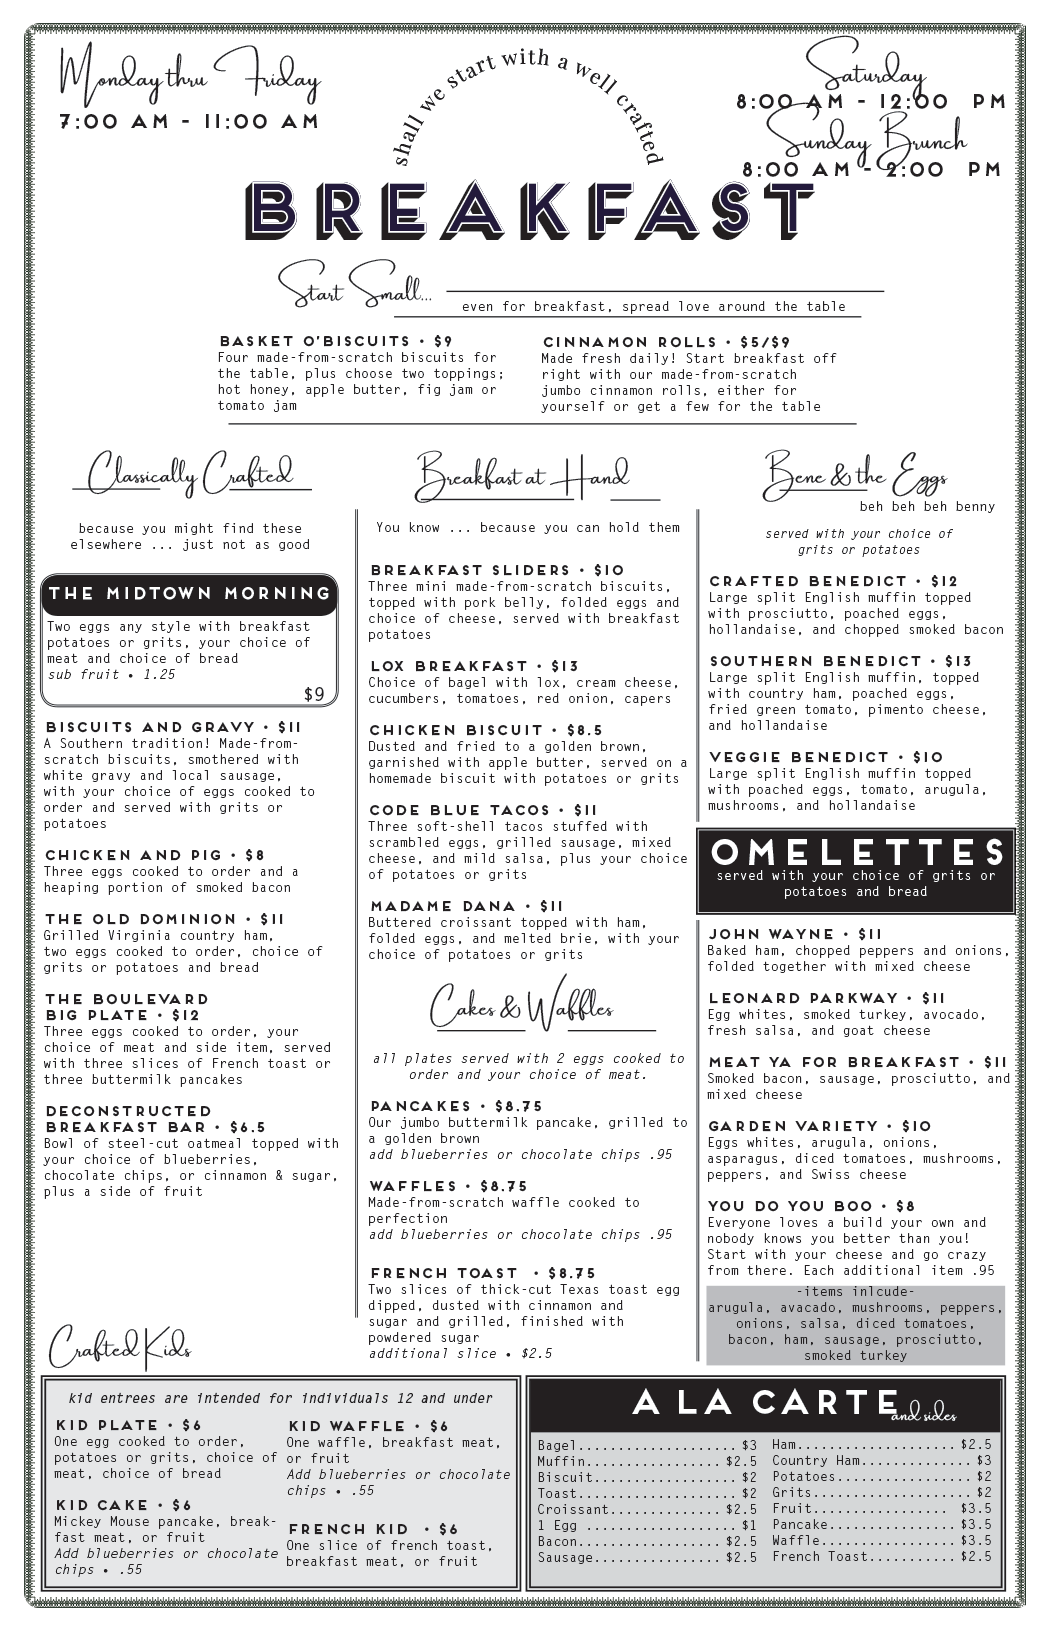 The front side of our breakfast menu